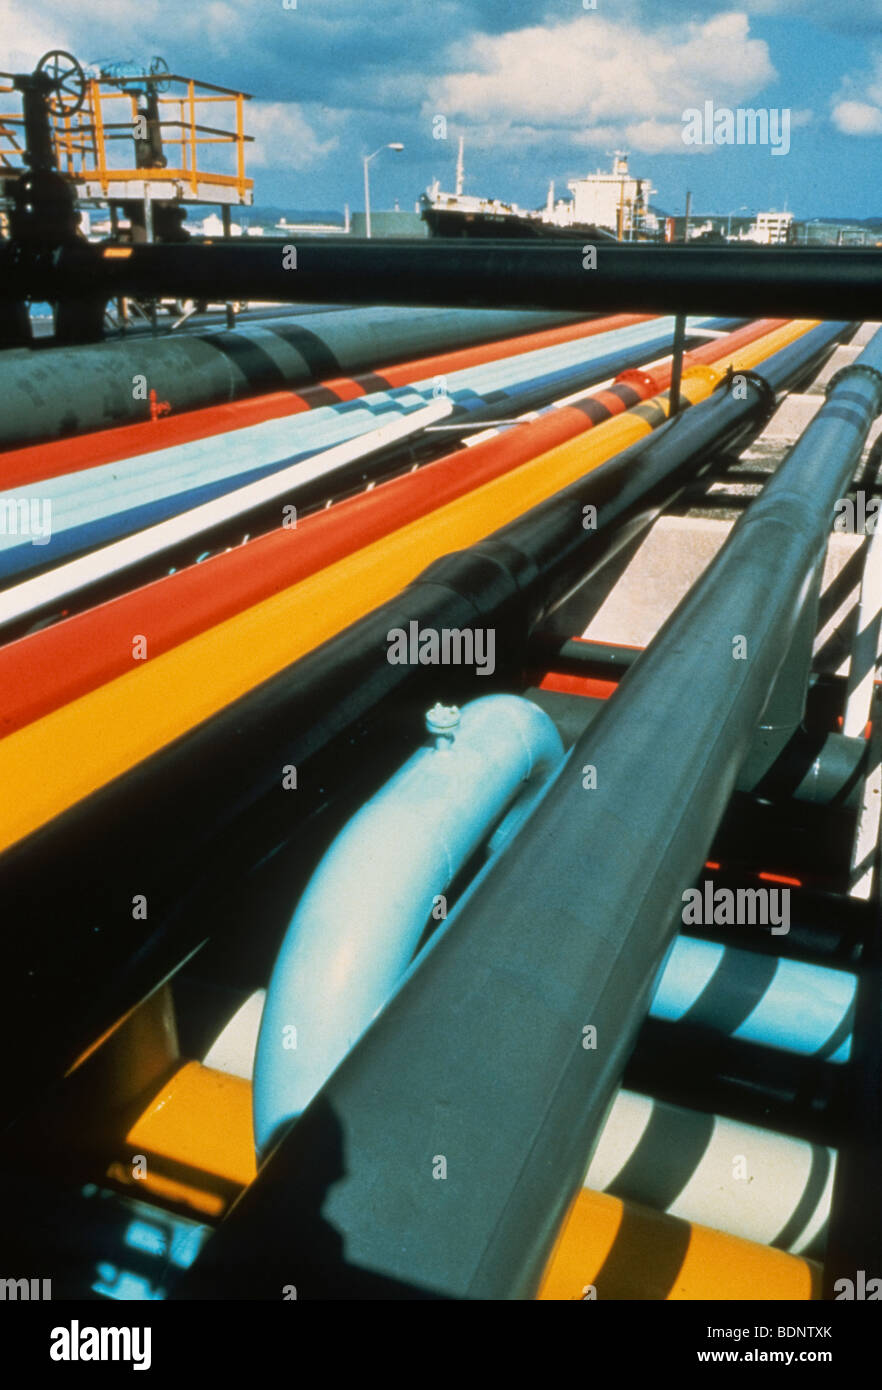 Pipes carrying oil to ships for transportation. St.Croix, Virgin Islands - Stock Image